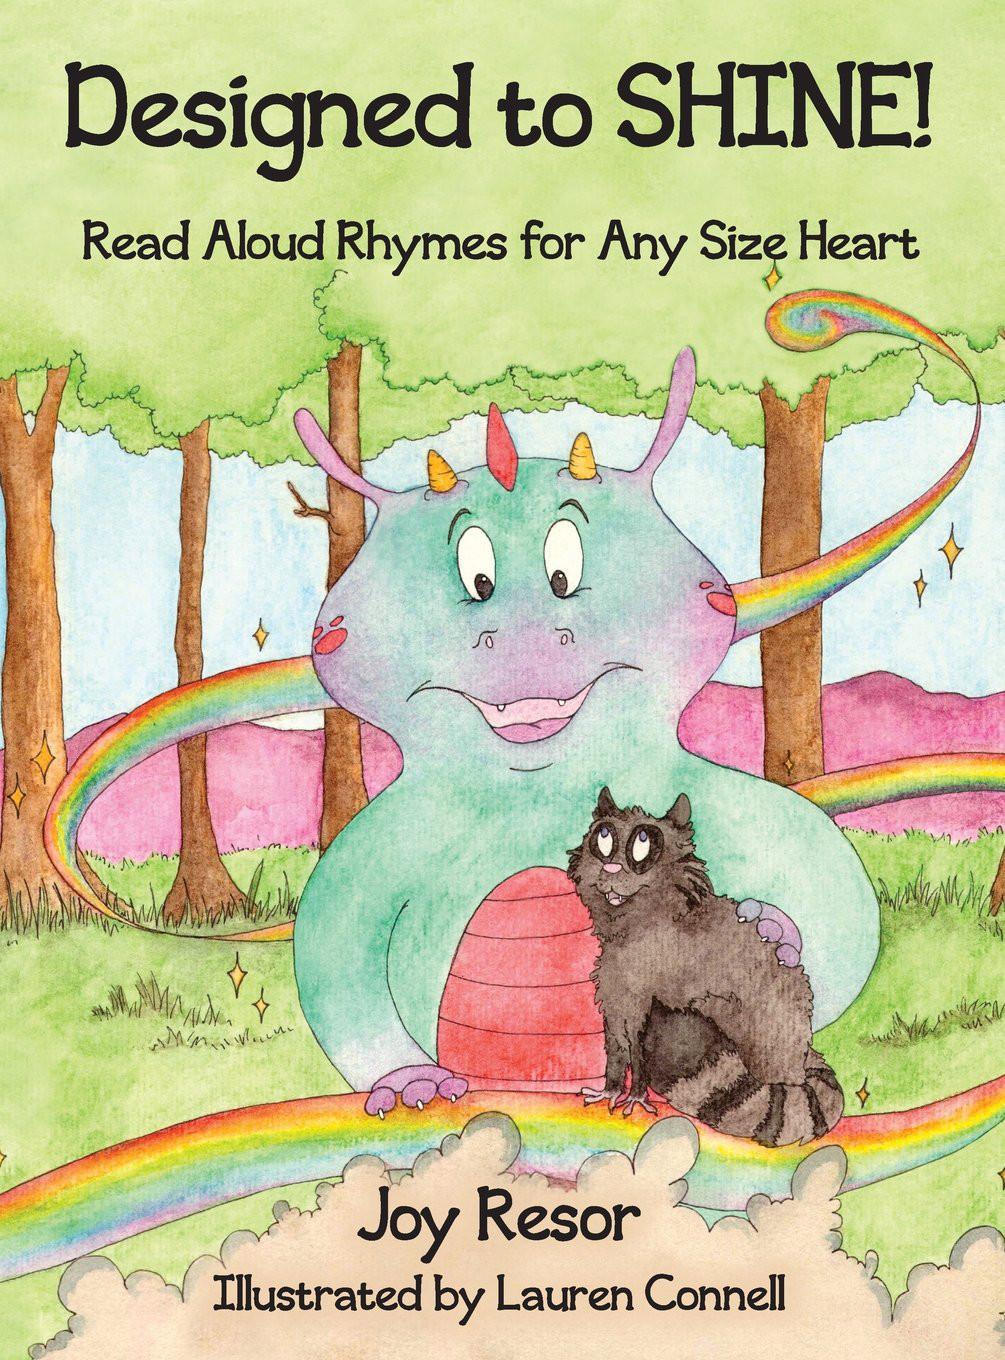 Designed to Shine!: Read Aloud Rhymes for Any Size Heart